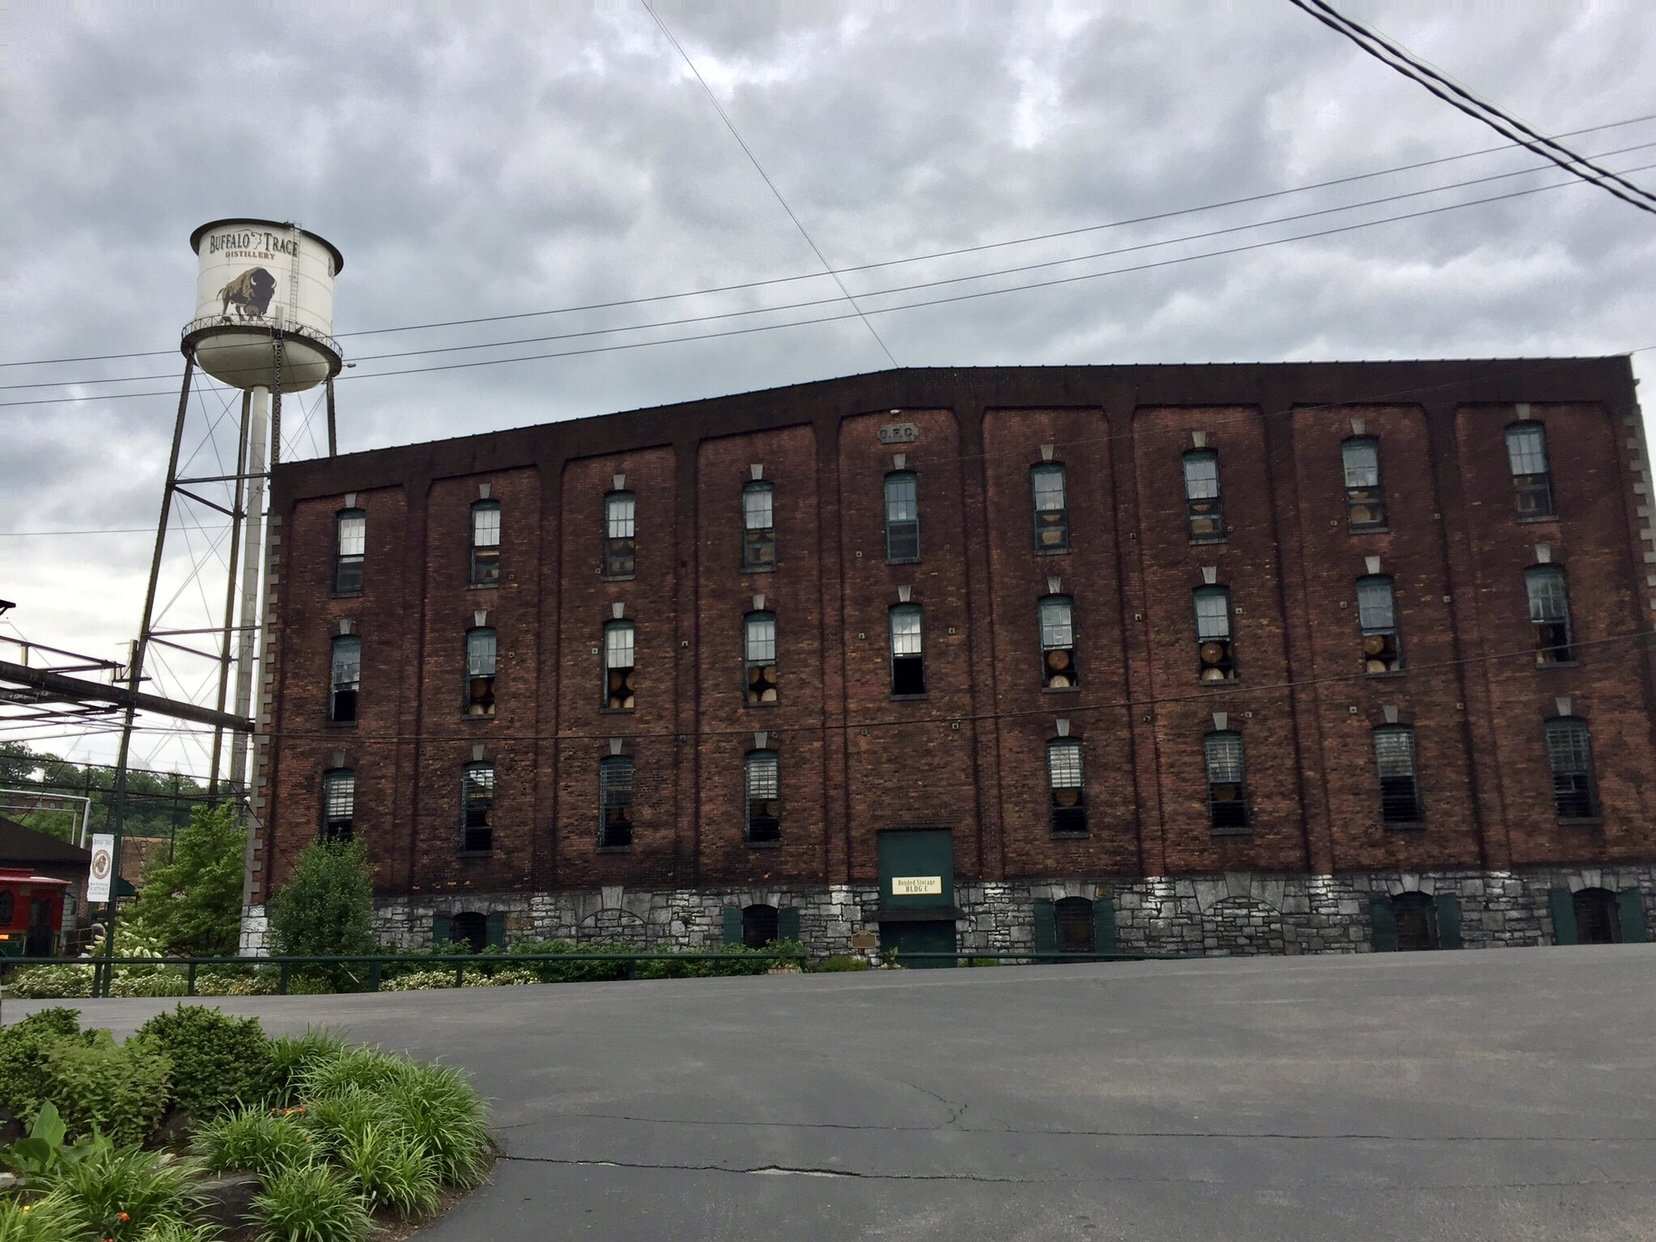 Warehouse C | The OFC Distillery: a Taste of History at Buffalo Trace | www.herlifeinruins.com